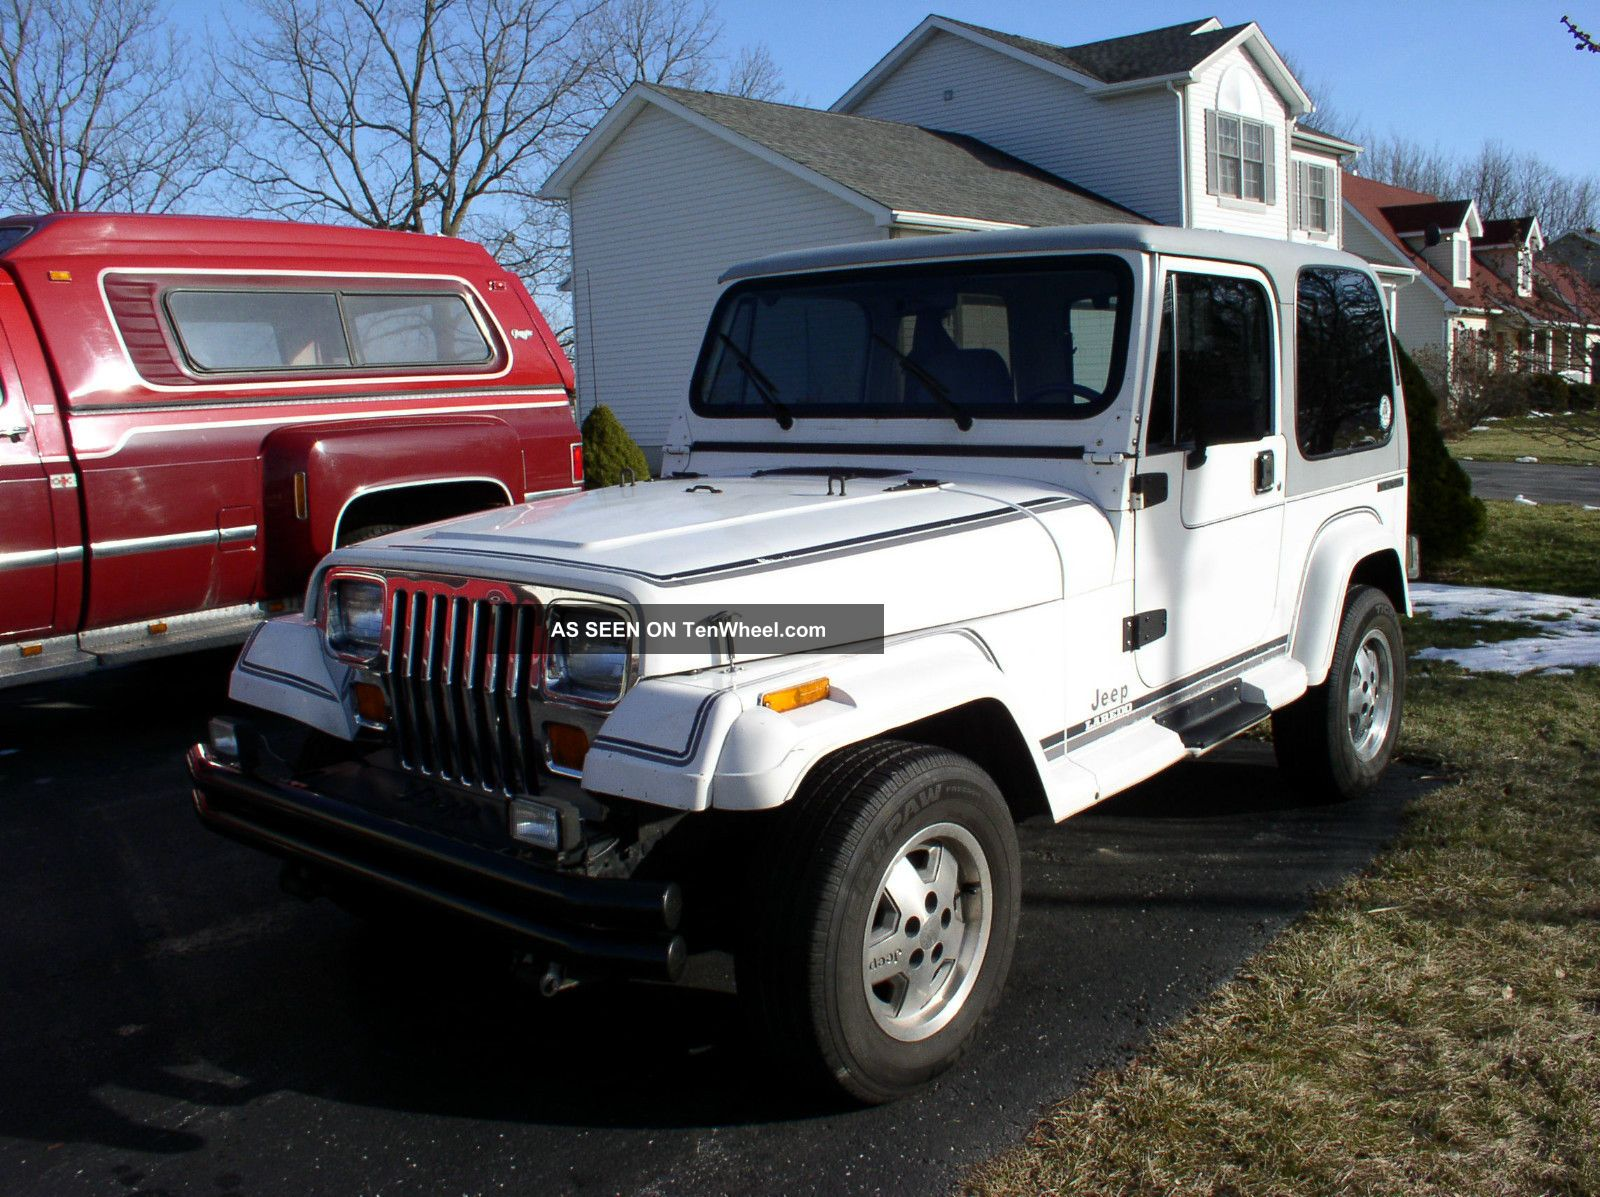 1989 Jeep Wrangler Laredo,  Loaded,  Rust,  Very.  Yj Wrangler photo